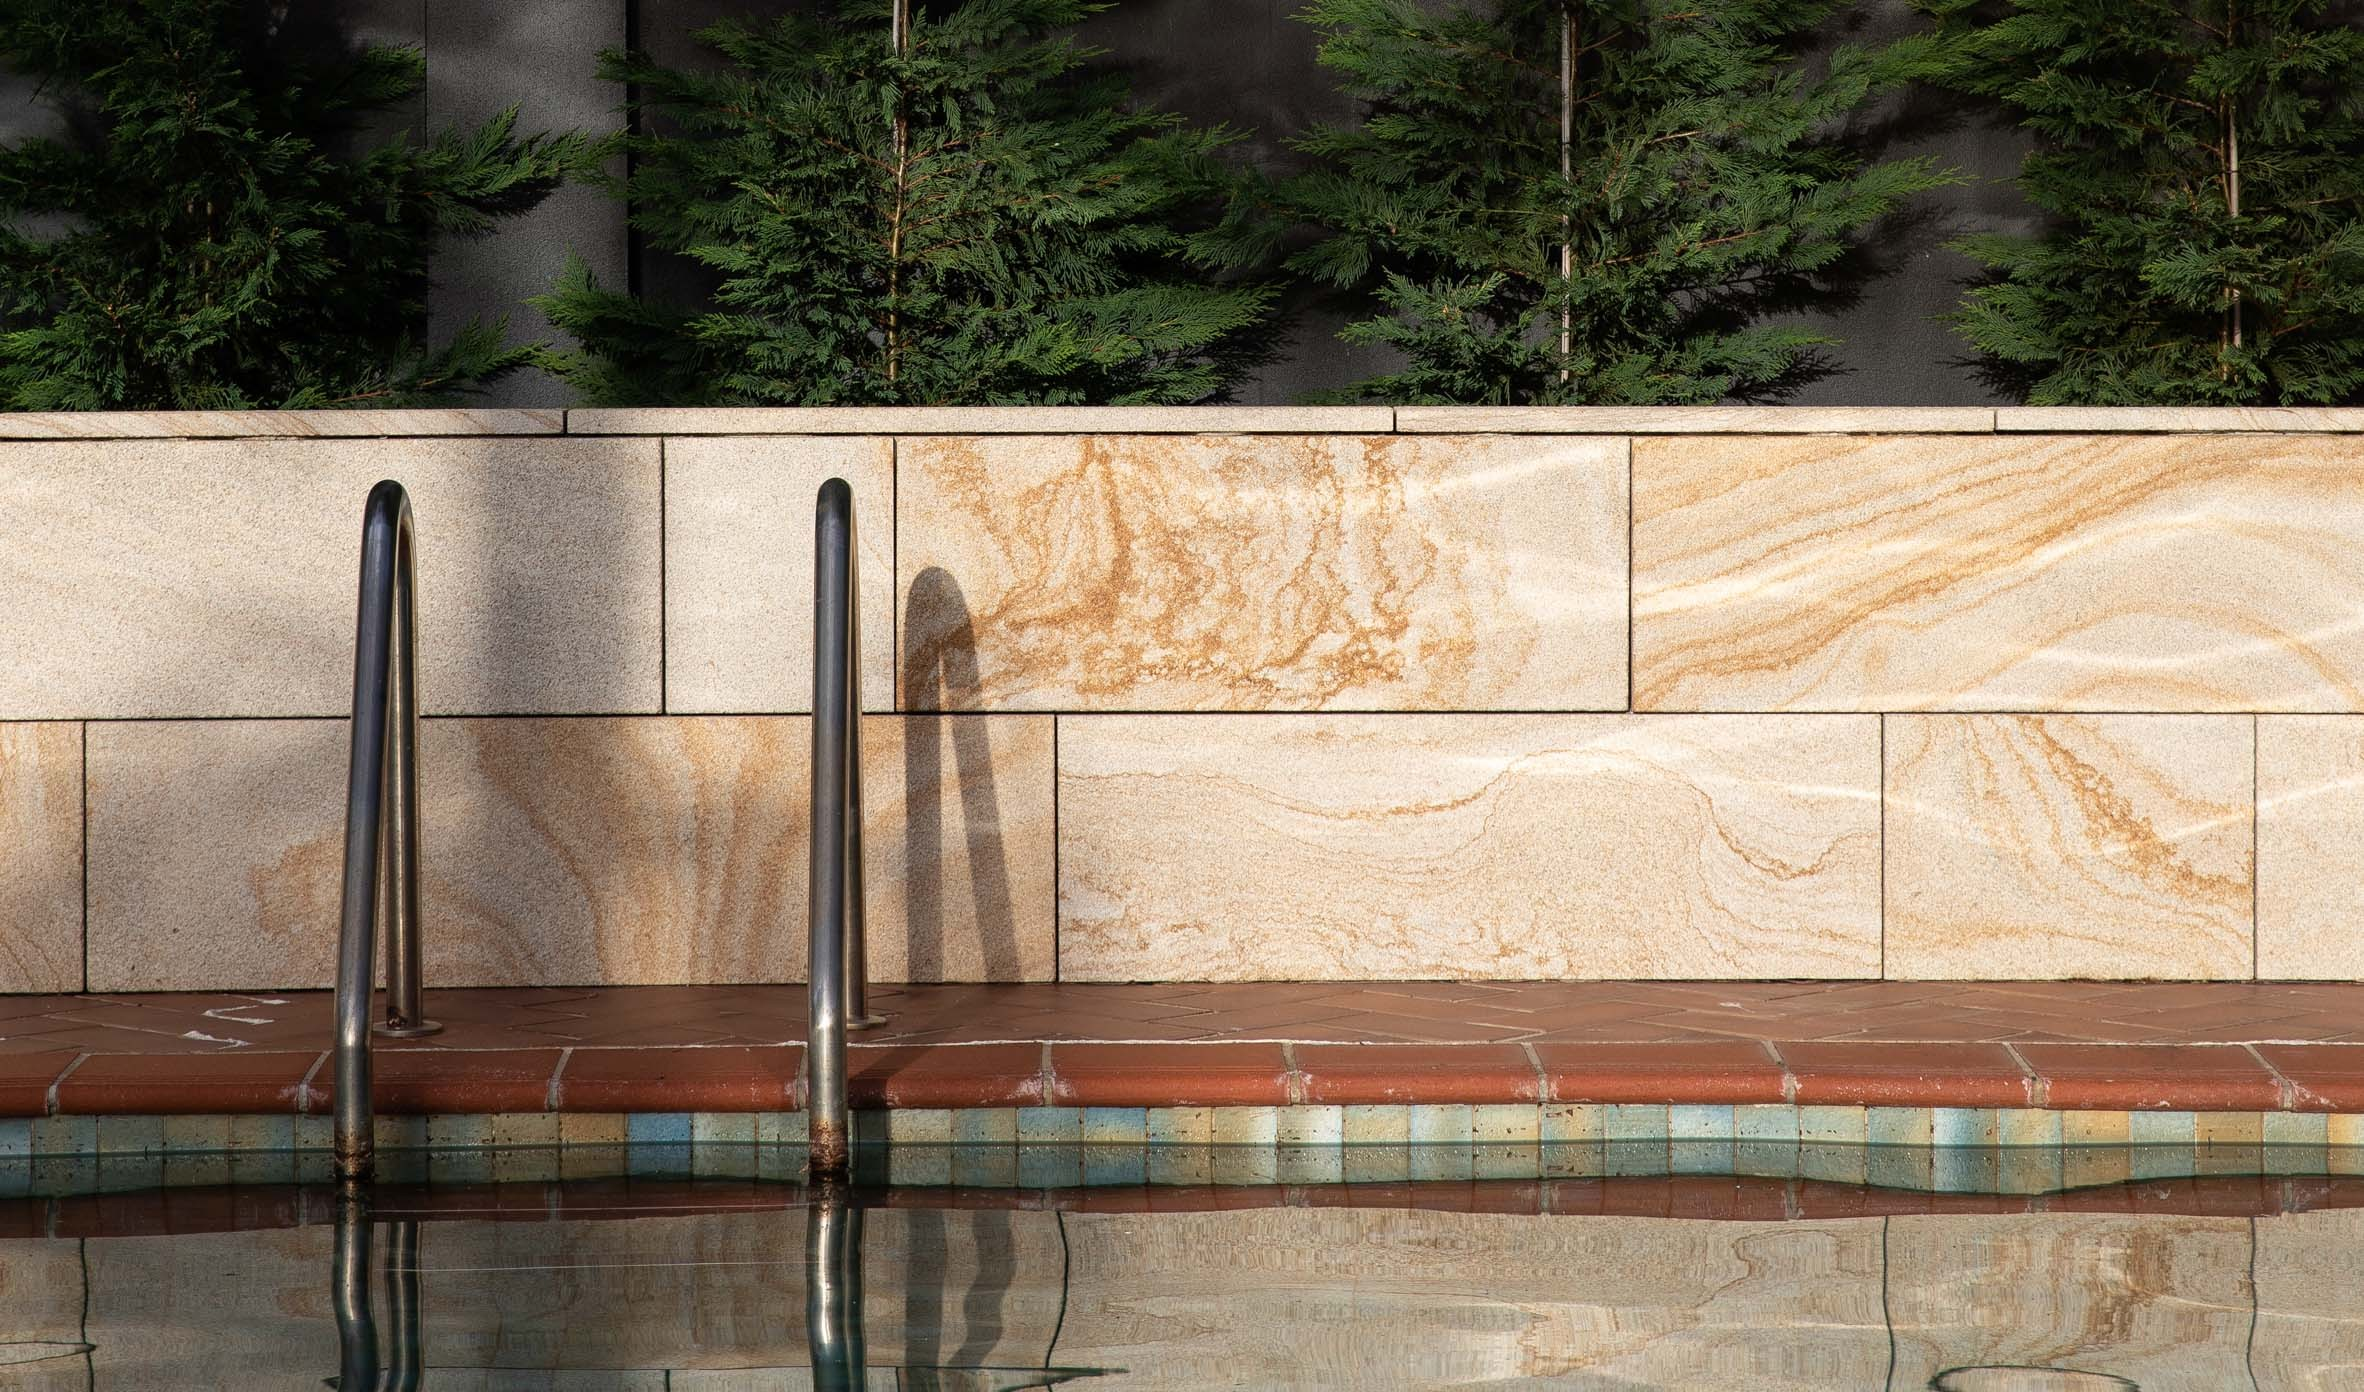 Wall-Cladding-and-Stacked-Stones Thumbnails wall-cladding-and-stacked-stones-18